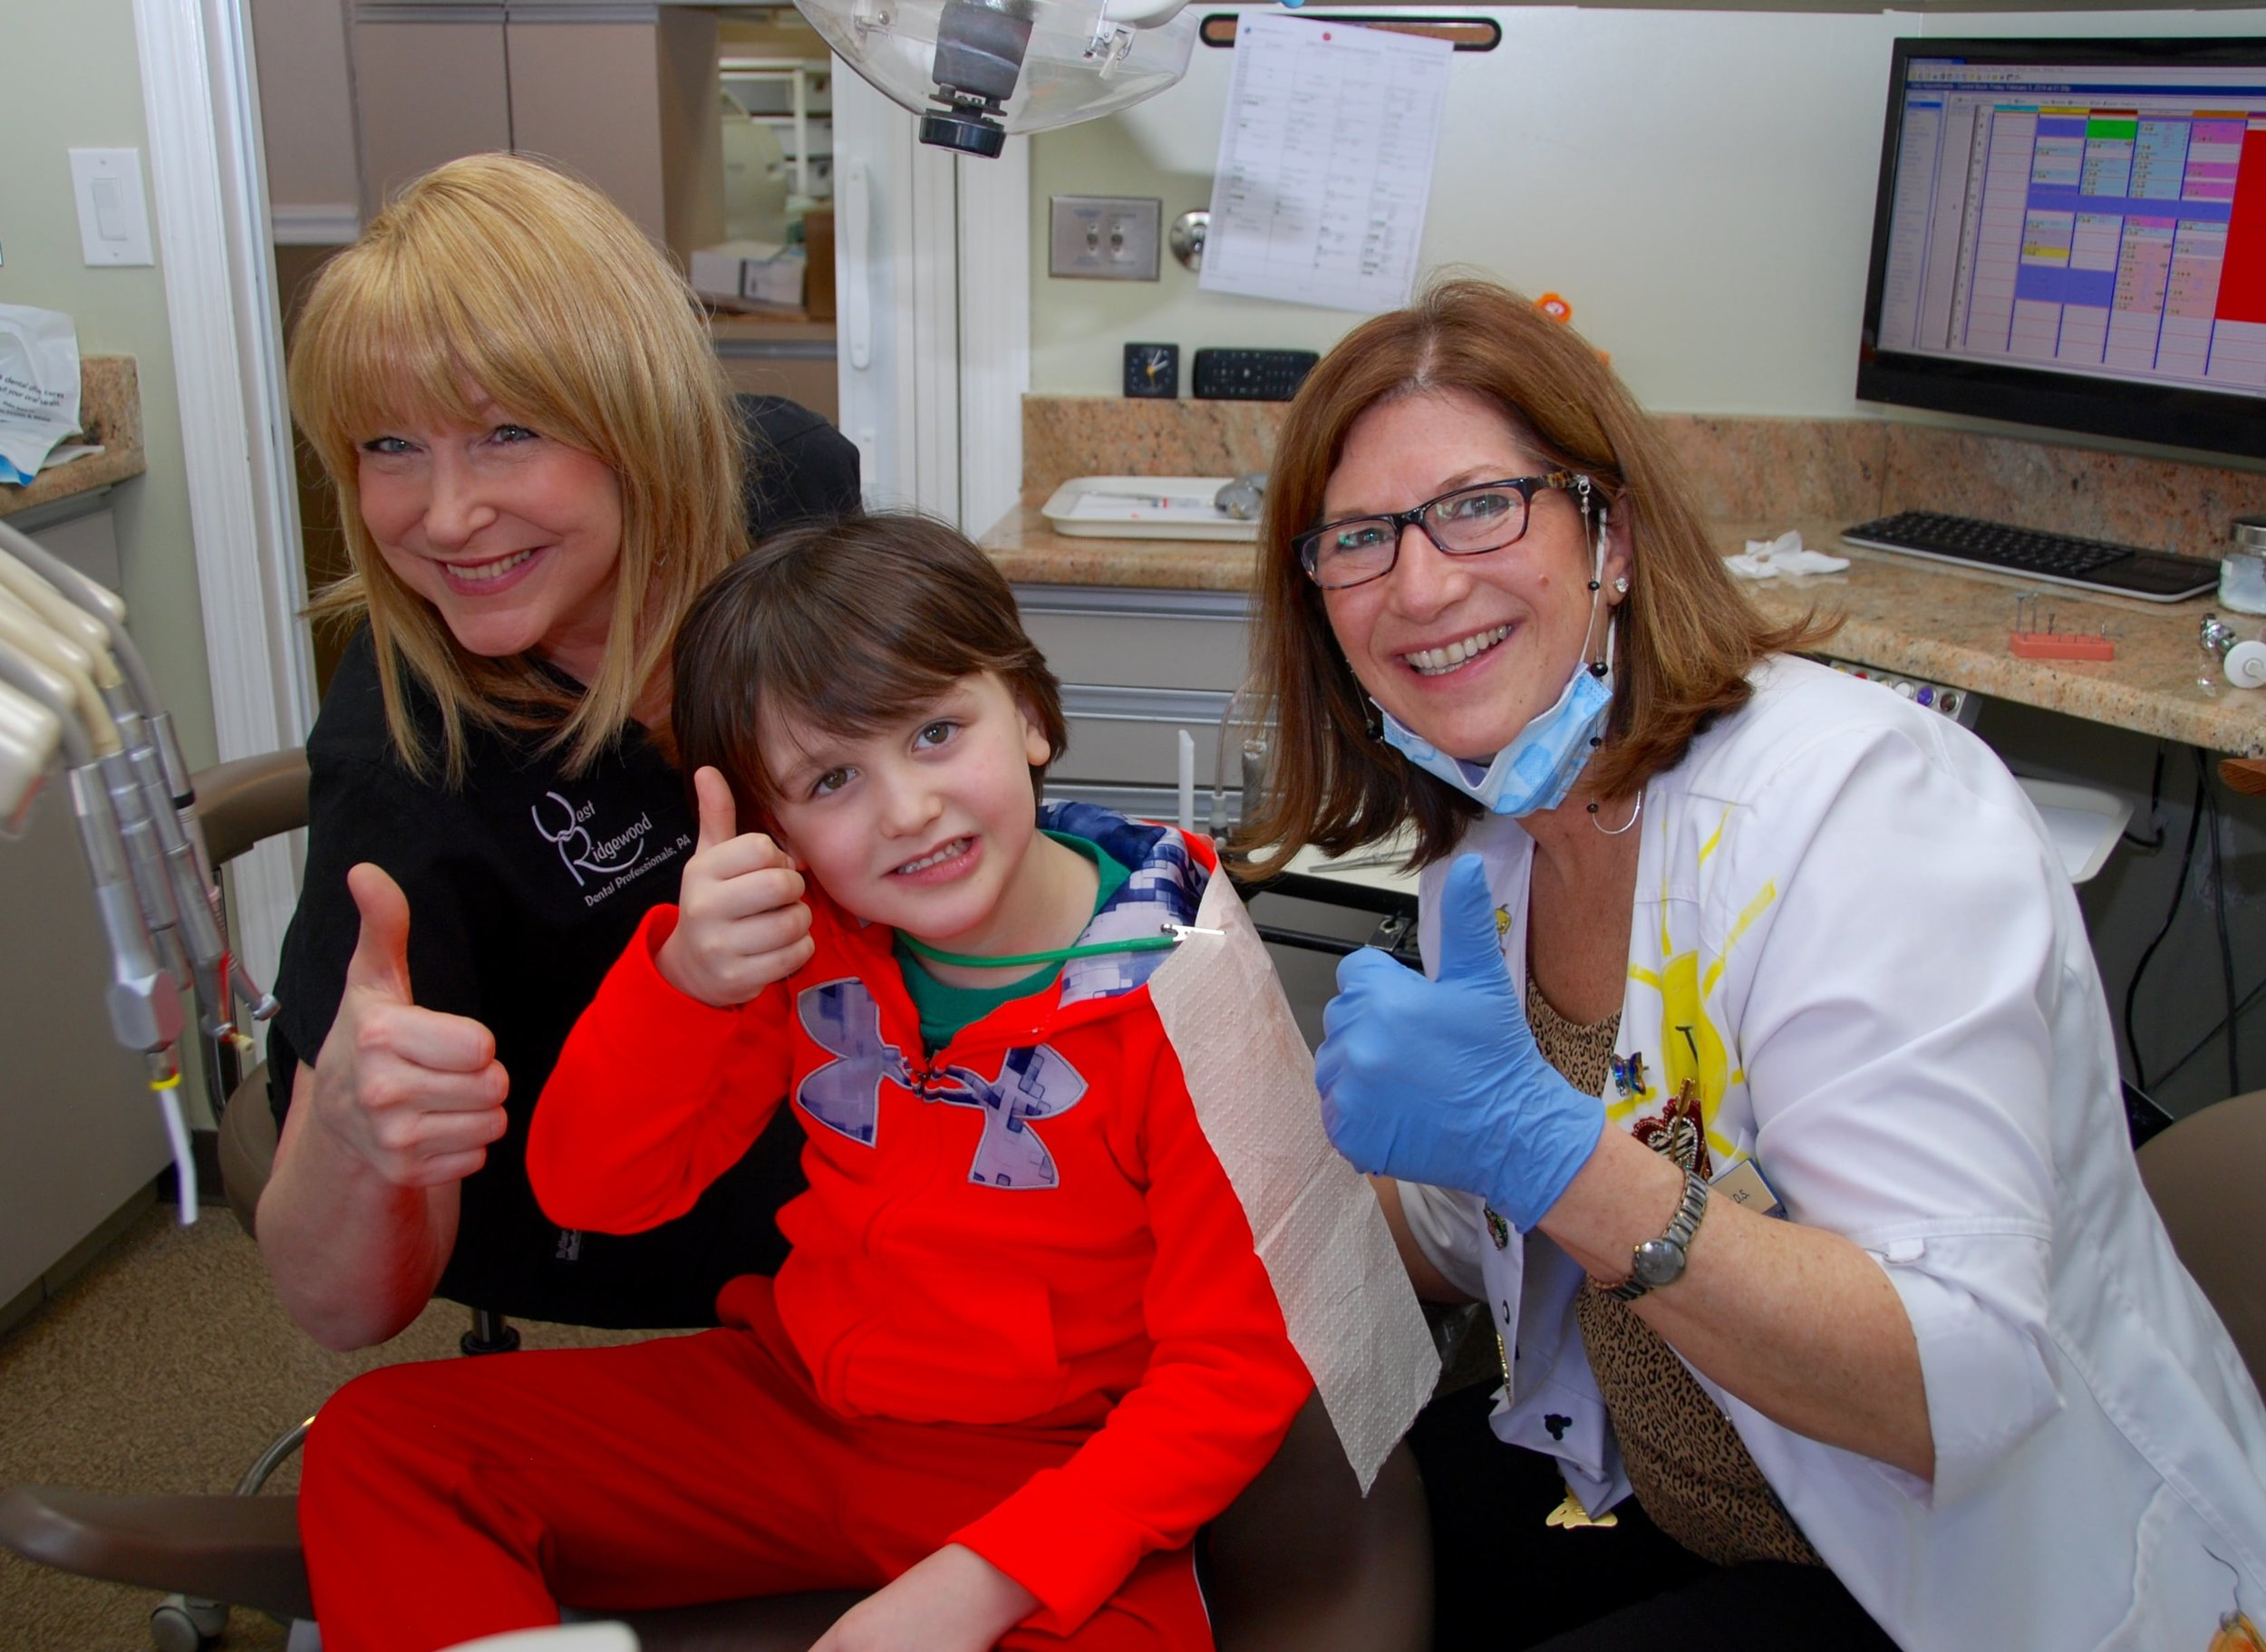 West Ridgewood Dental Professionals - Great Dentist for Kids in Bergen County